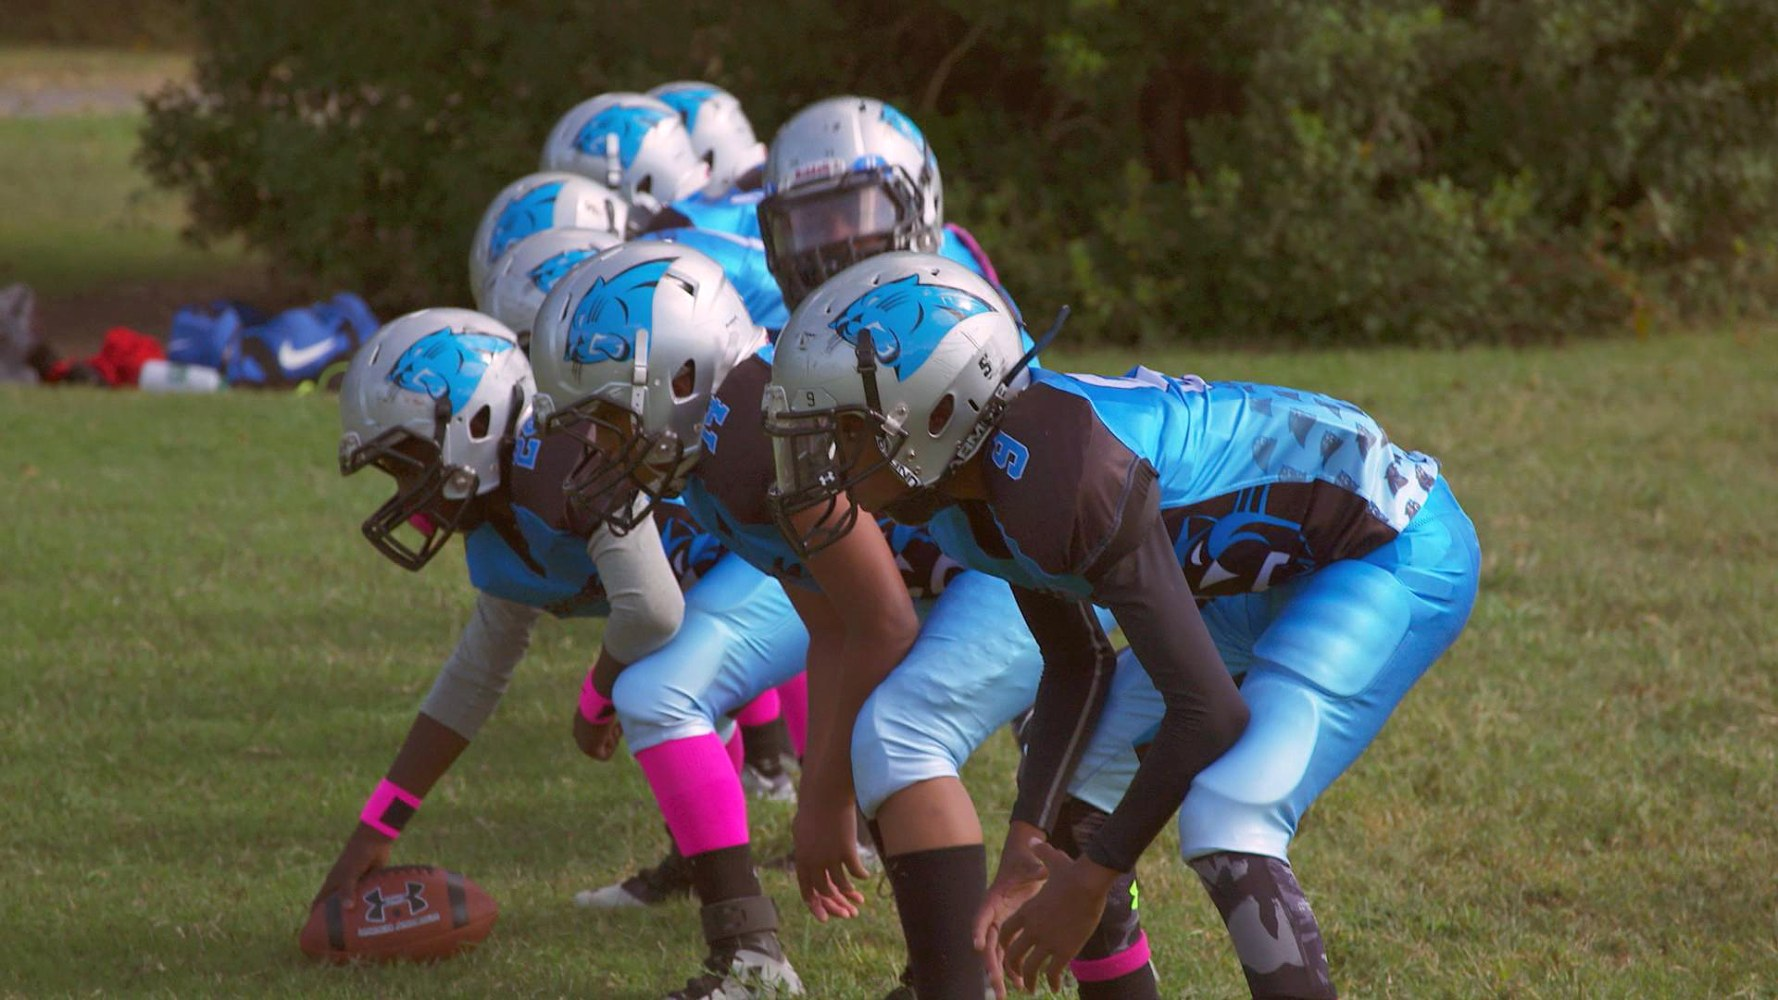 Brain tissue of youth football players after just one season nbc news